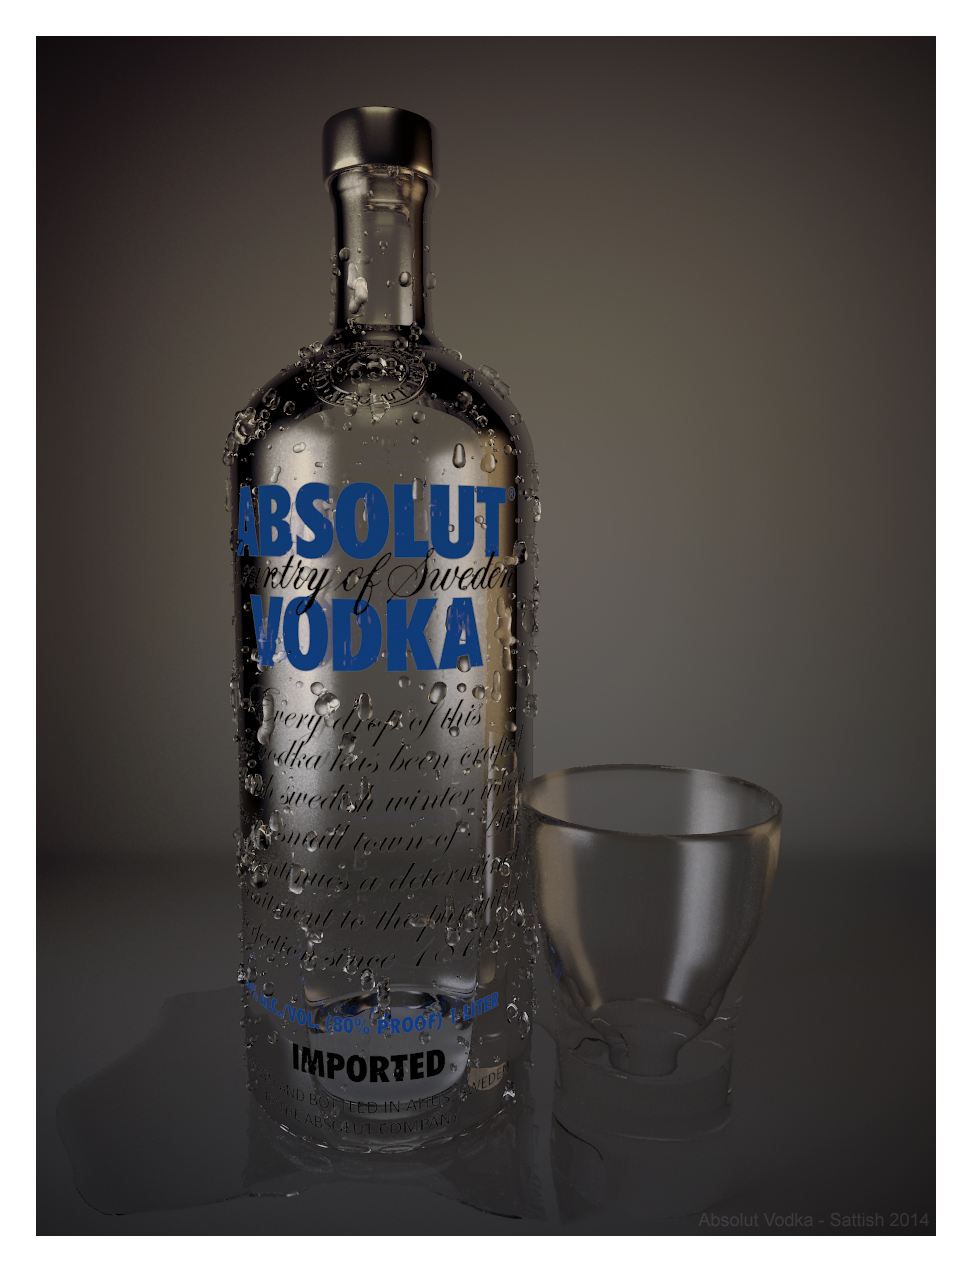 Absolut by SATTISH